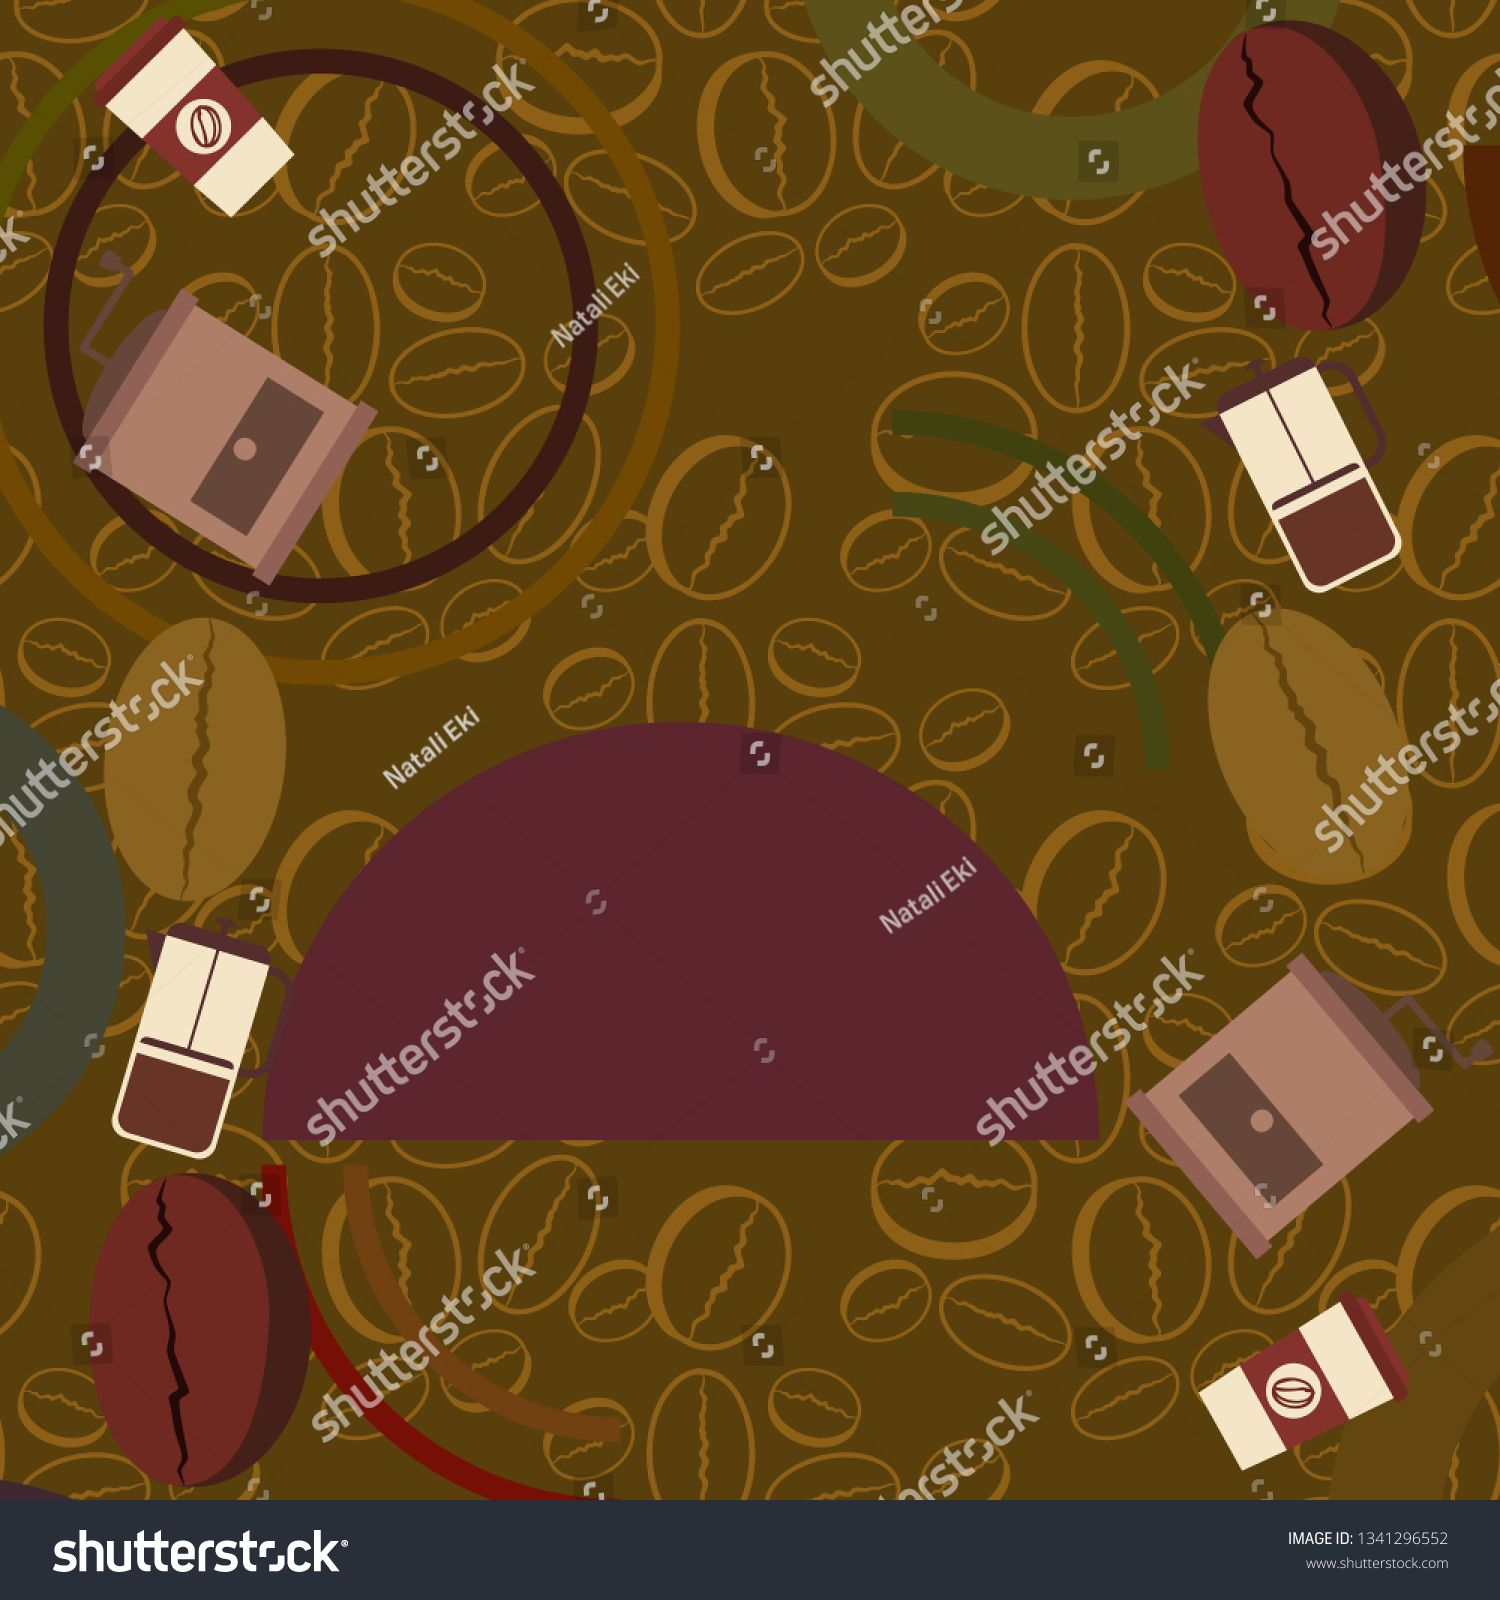 French press coffee, coffee beans, spilled coffee, vector